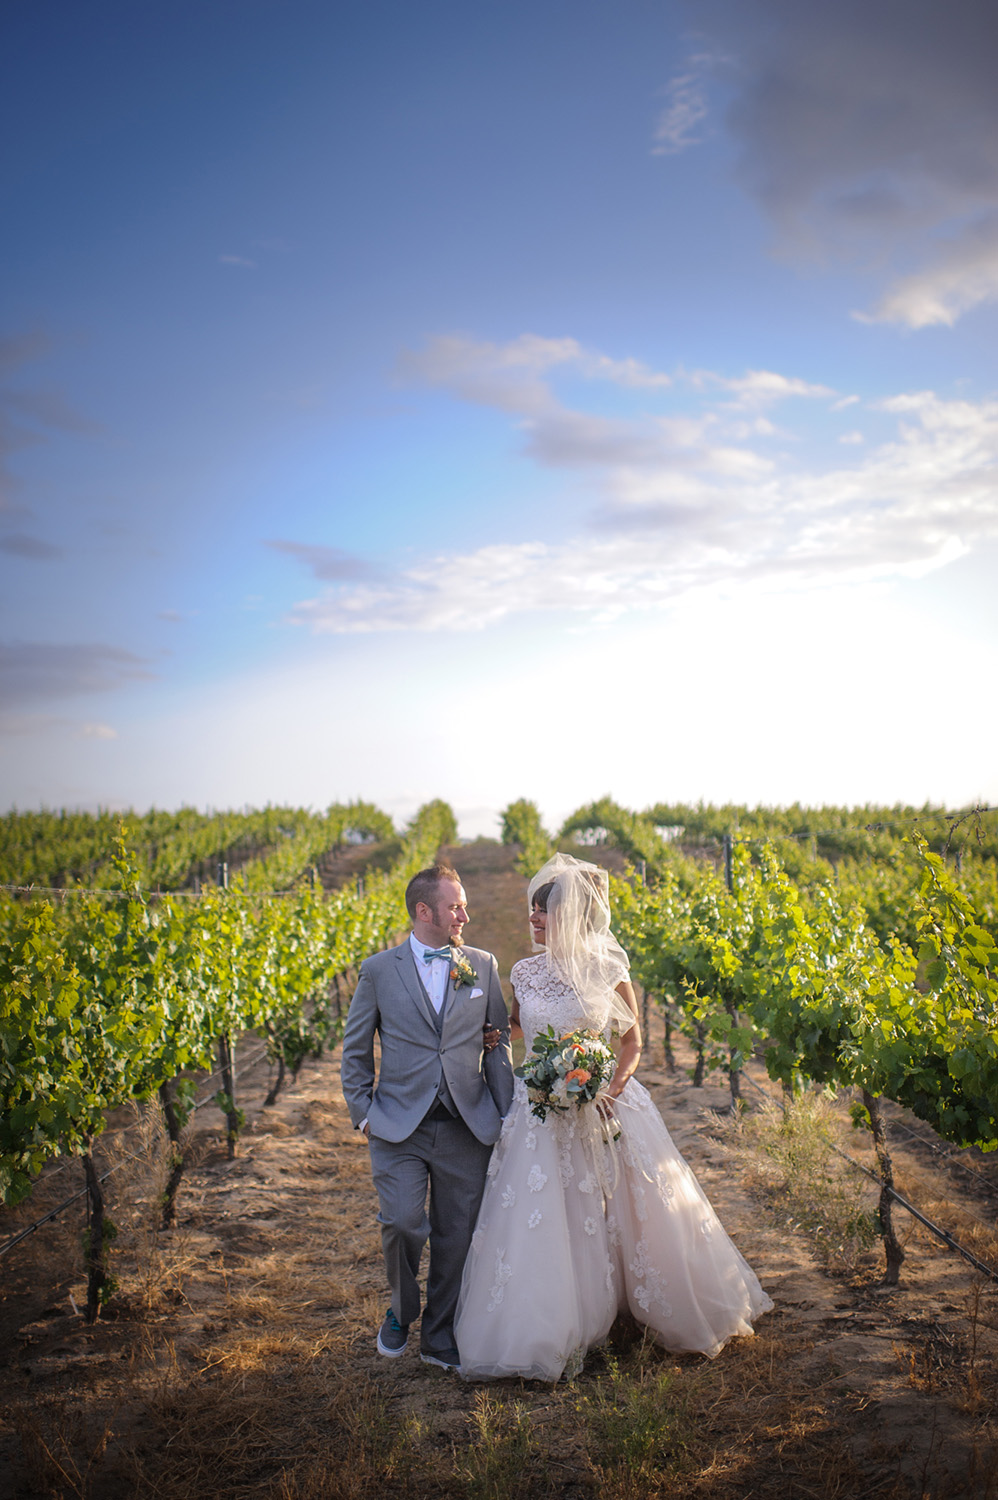 This was the most beautiful wedding day at Mount Palomar Winery. Big white puffy clouds, a bright blue sky, and vibrant green vines made for a beautiful backdrop for Angela and Nick's wedding portraits.